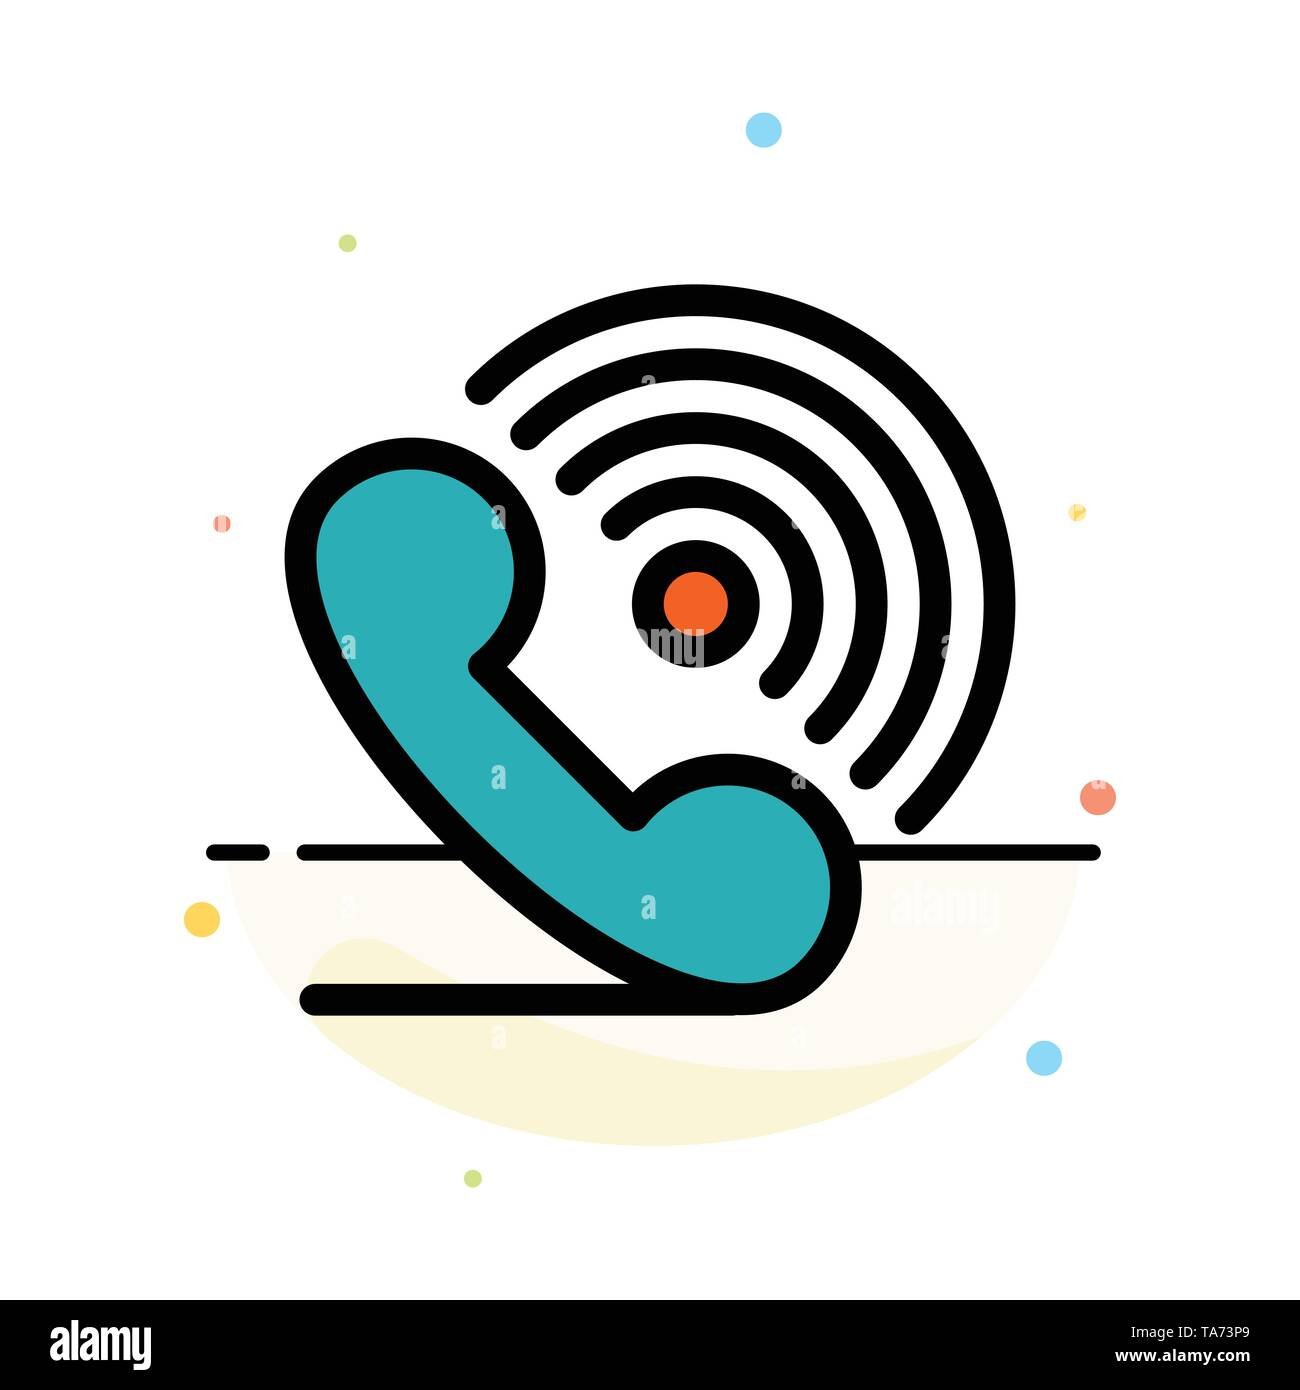 Call, Phone, Receiver, Ring, Signals Abstract Flat Color Icon Template - Stock Image